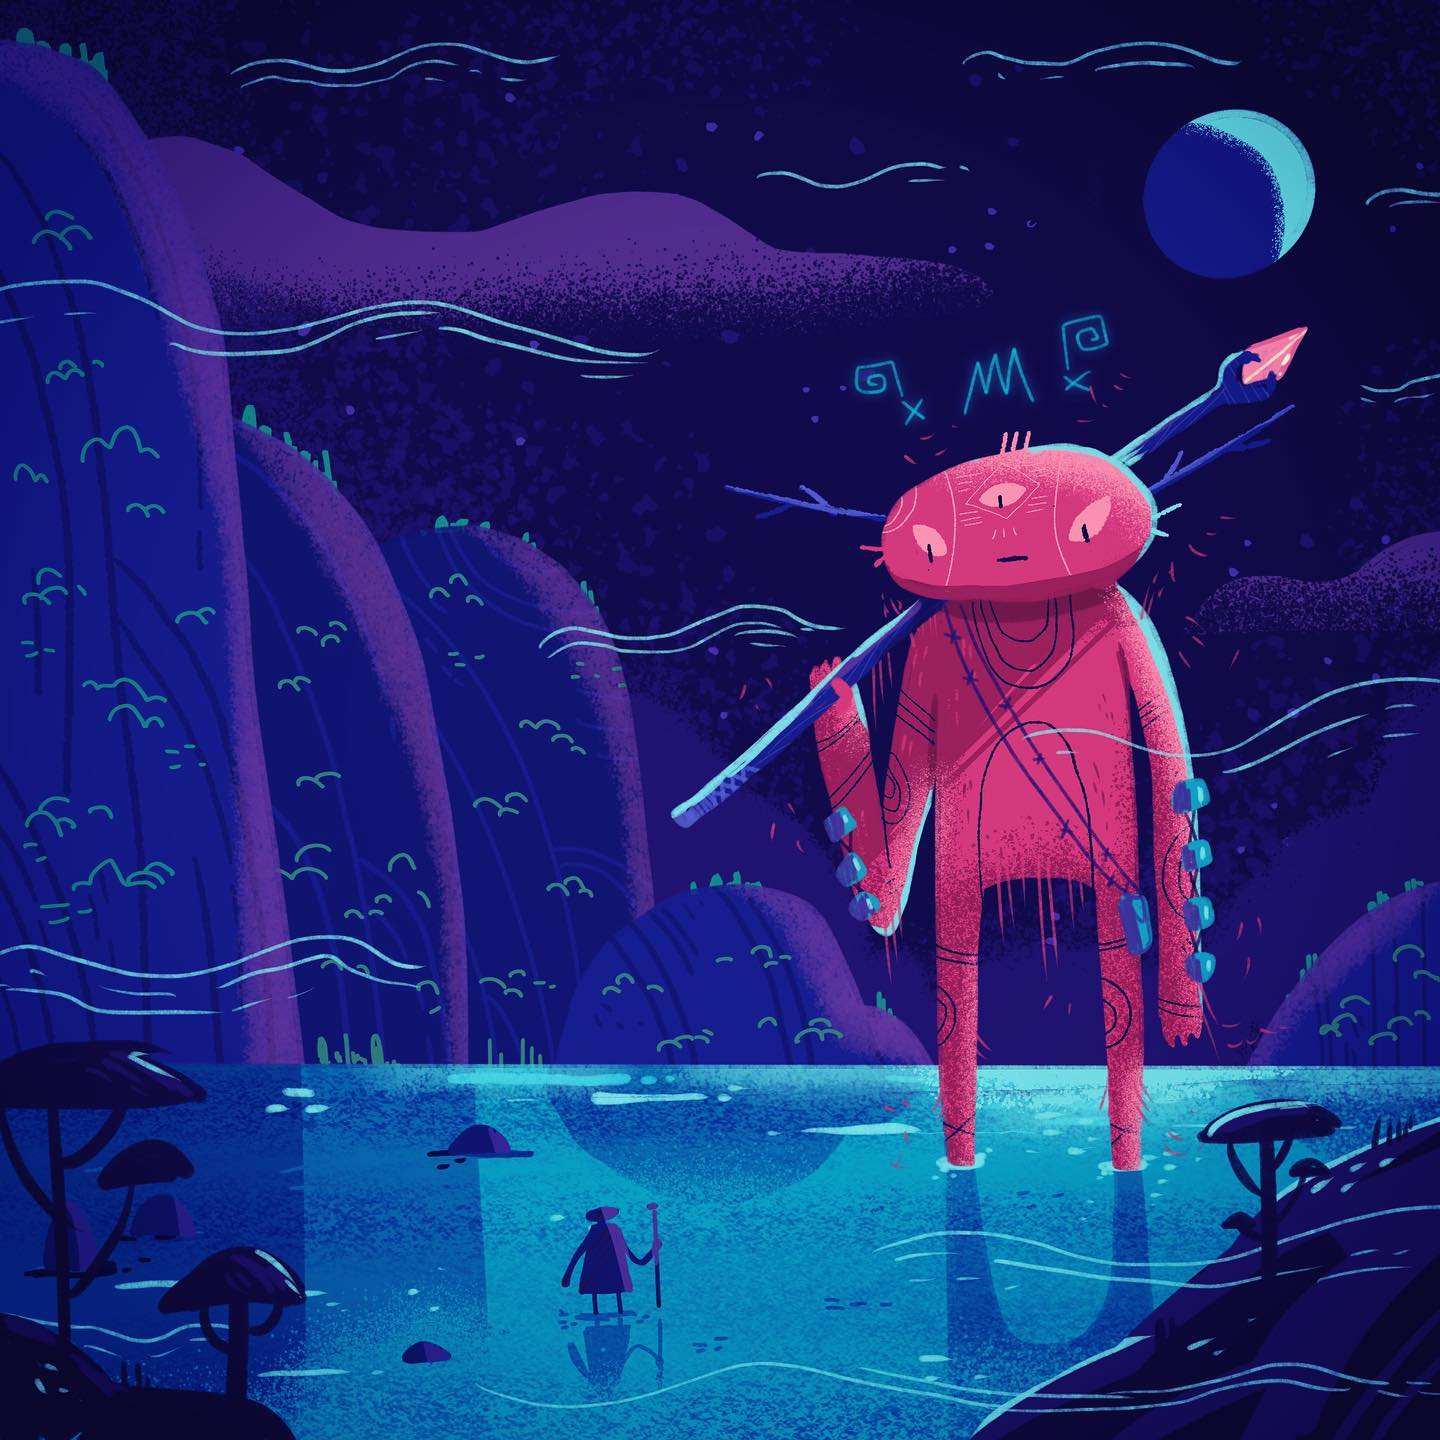 :::Meet your fate:::ipad illustration made with Procreate...#procreate #illustration #artoftheday